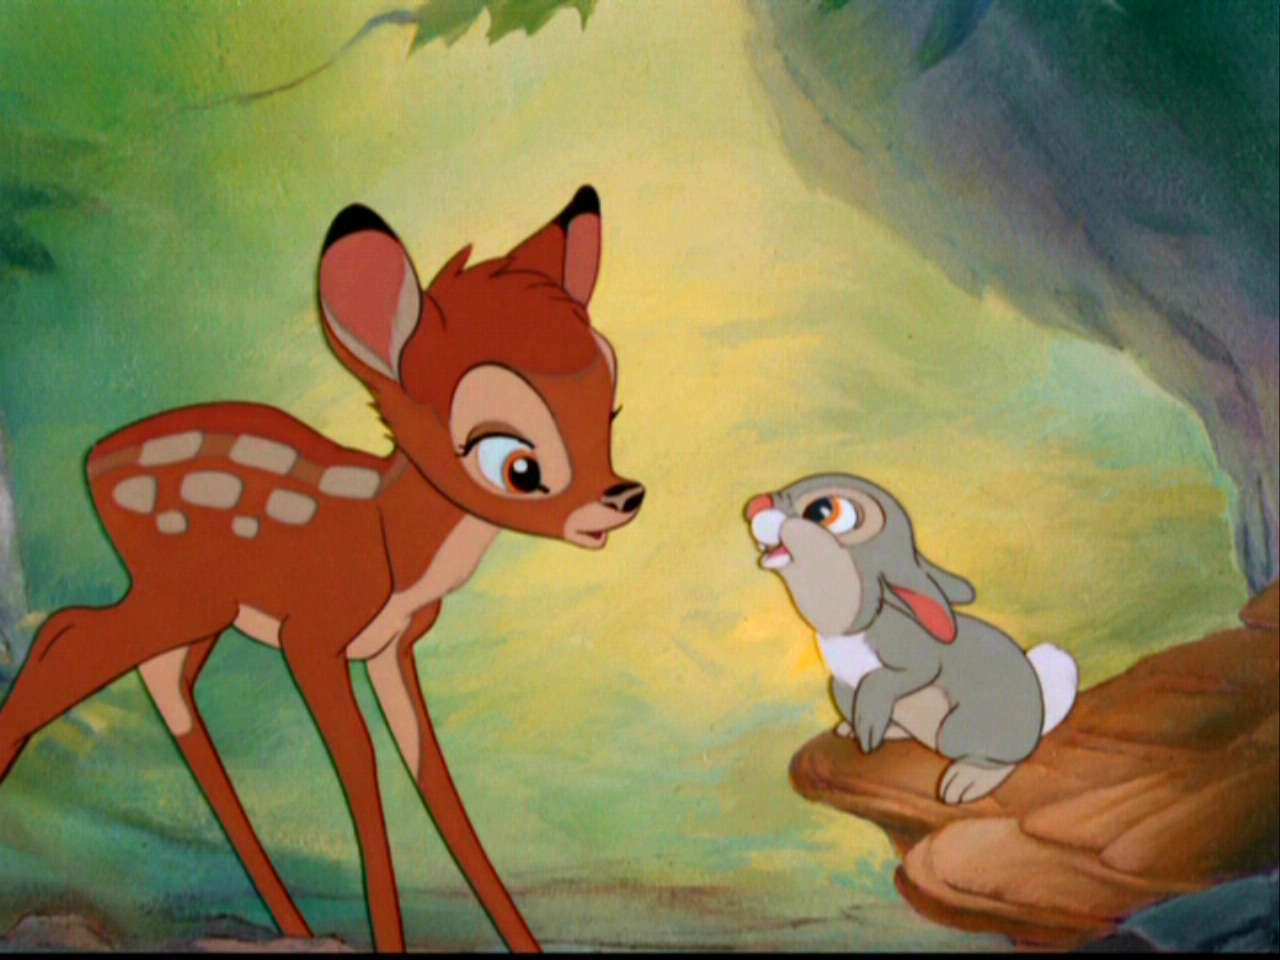 Exclusive-Bambi-HD-Free-Image-Download-wallpaper-wp5805444